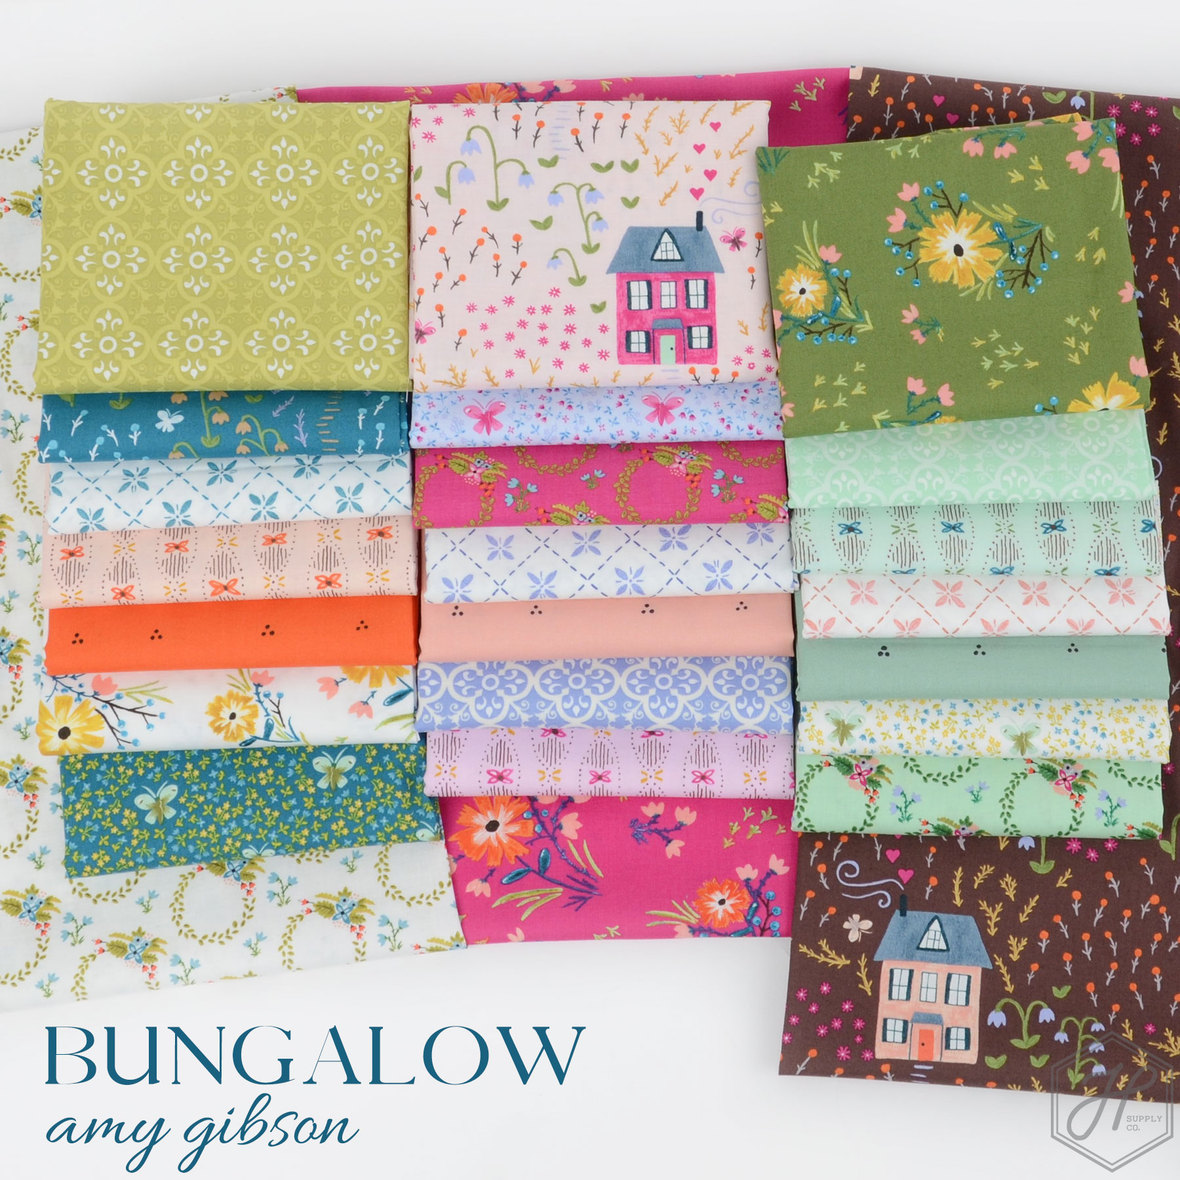 bungalow-fabric-poster-Amy-Gibson-at-Hawthorne-Supply-Co